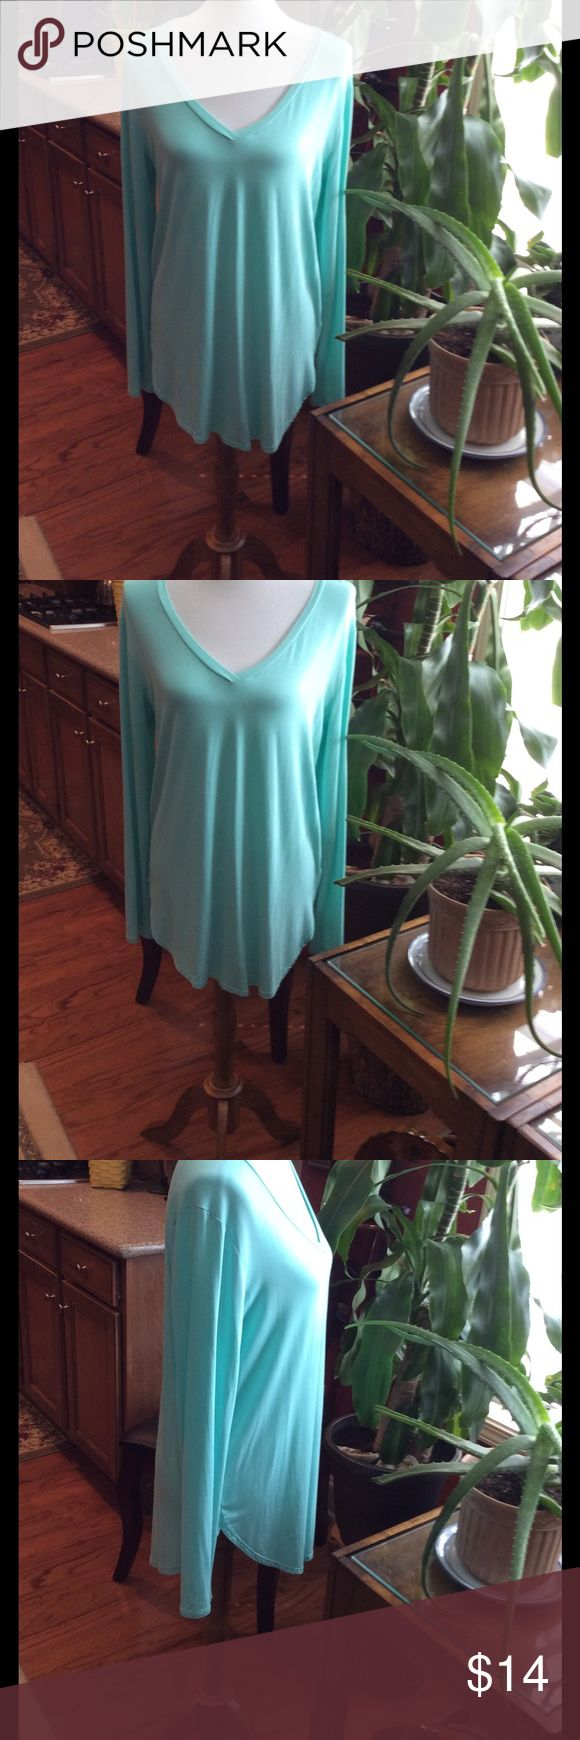 "Emma's Closet Mint Green Top So soft Emma's Closet mint green top. This top is 30"" long so it goes great with jeans or leggings. 95% Rayon Modal and 5% Spandex. emma's closet Tops"